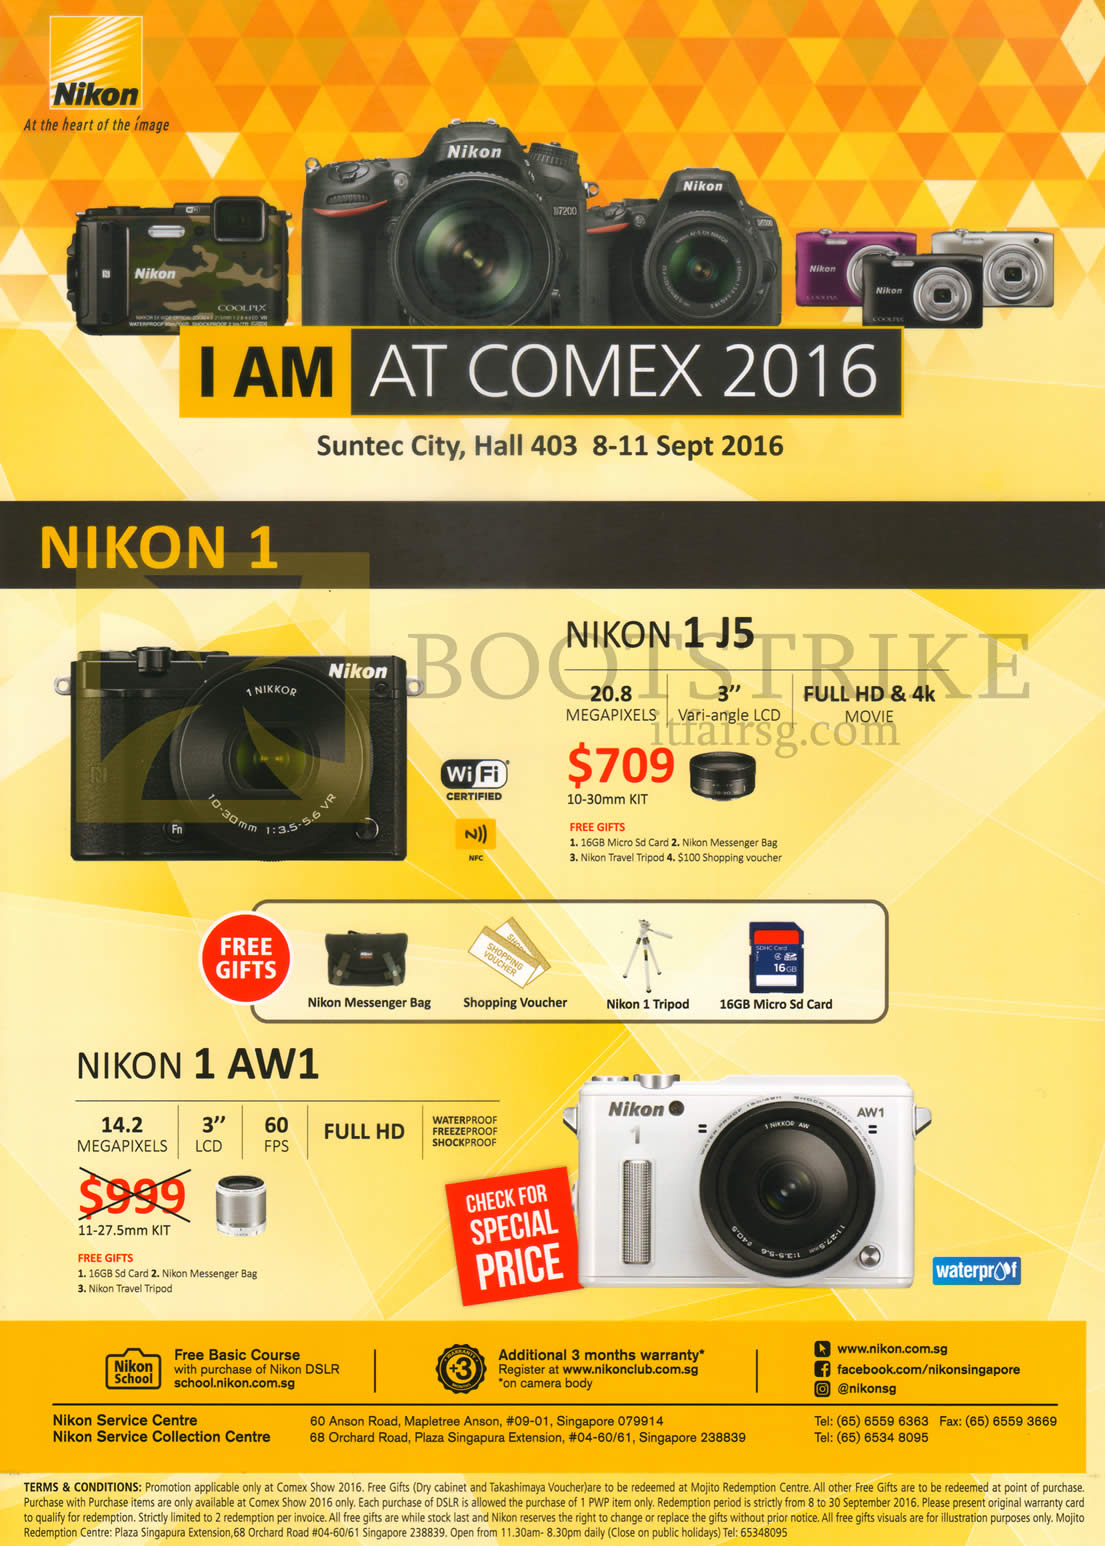 COMEX 2016 price list image brochure of Nikon Digital Cameras 1 J5, AW1